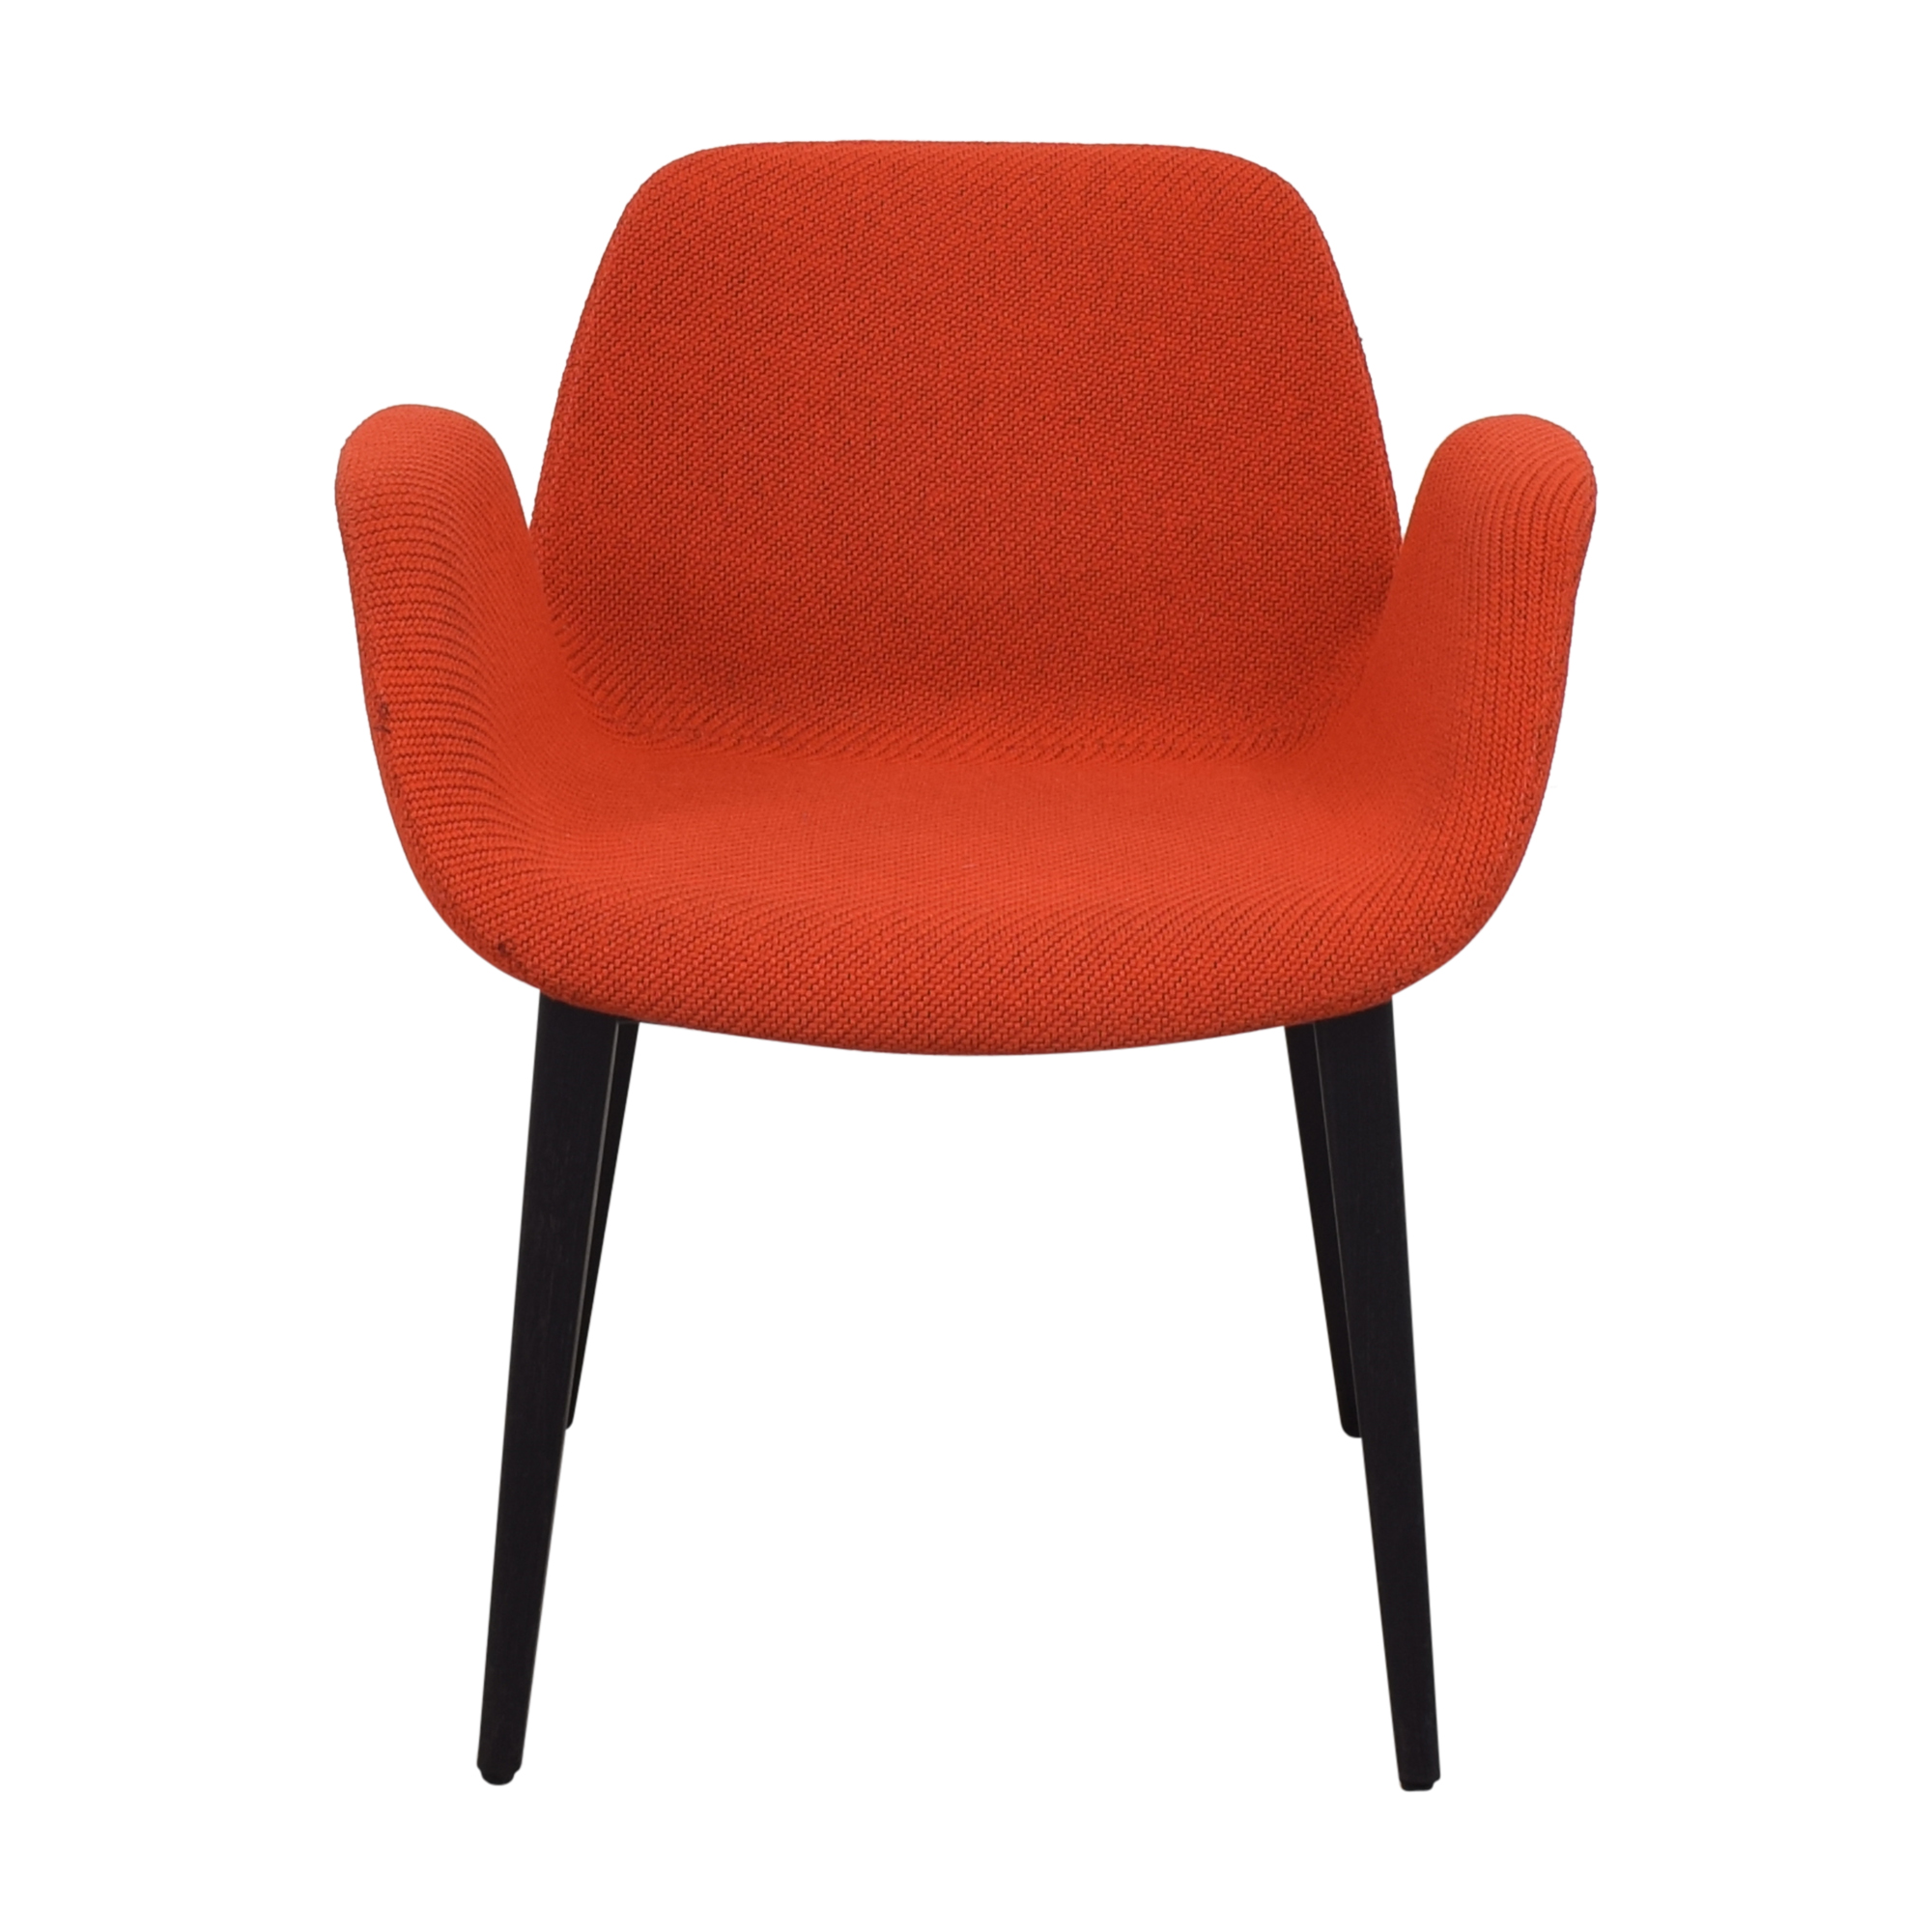 Koleksiyon Halia Arm Chair / Chairs